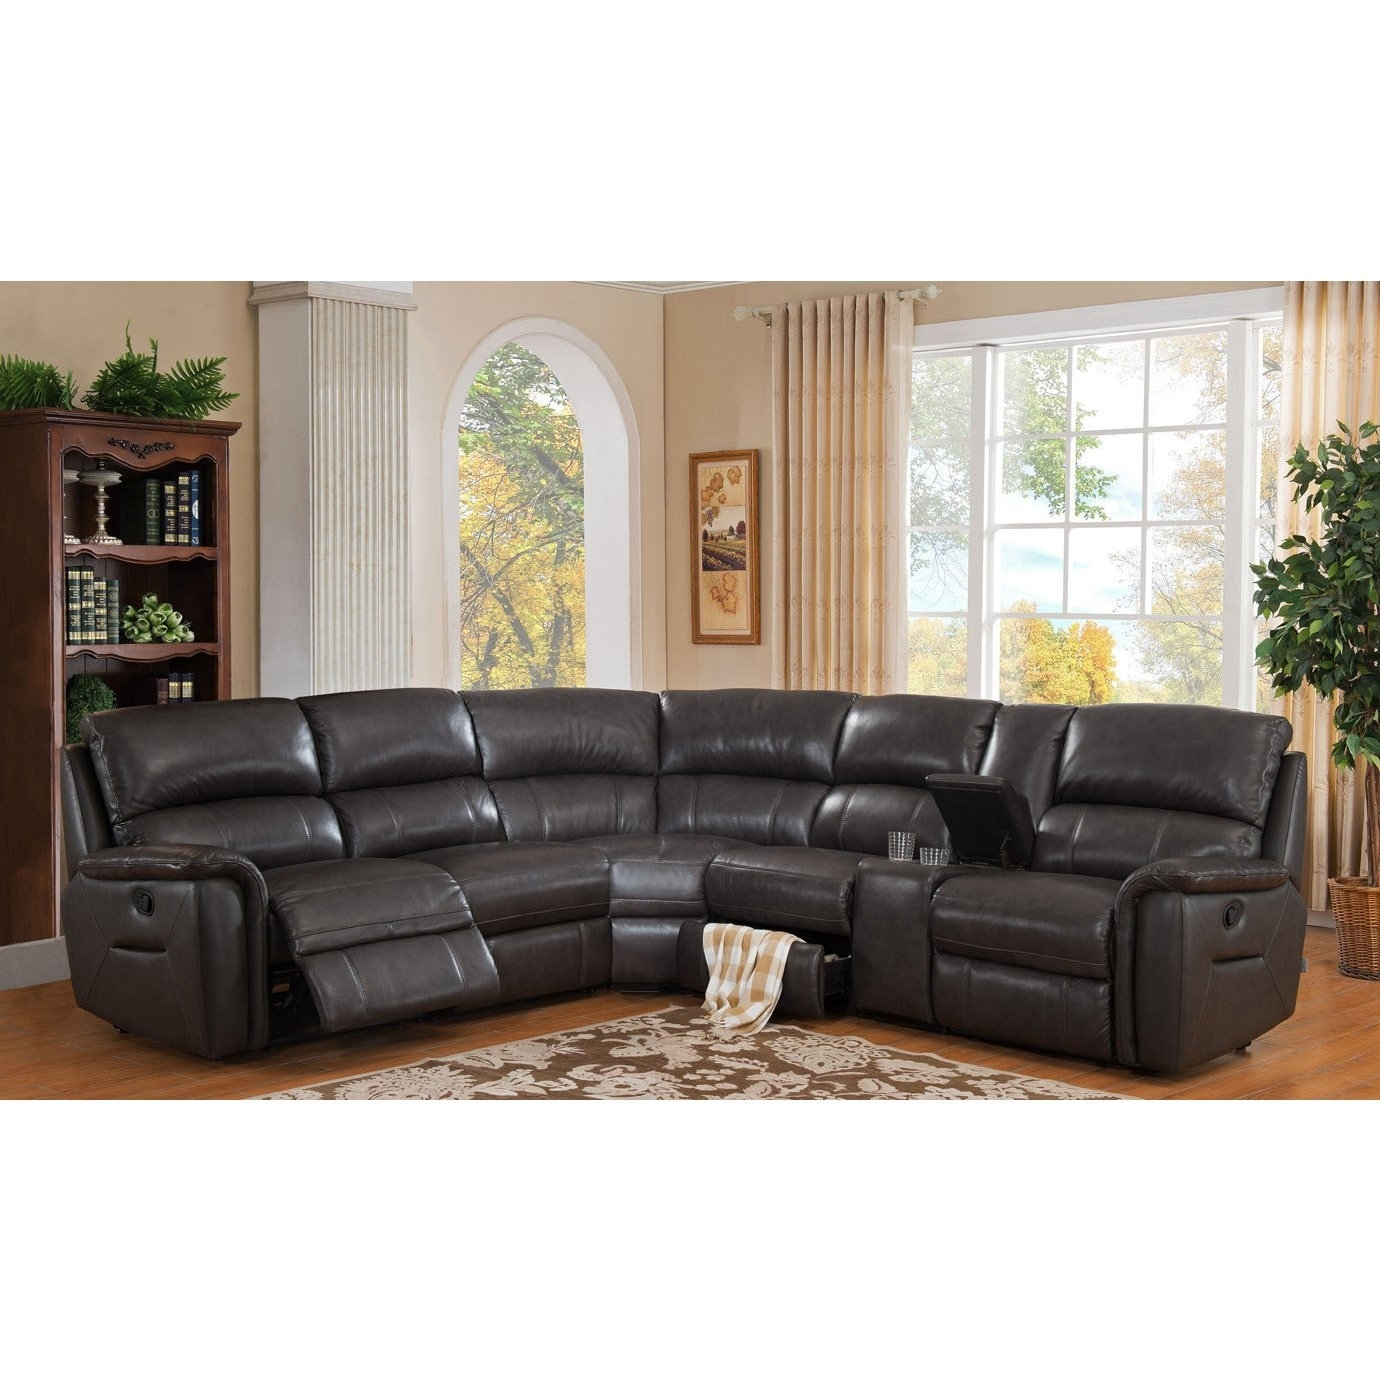 Shop Hydelineamax Camino Charcoal Grey Leather Reclining Throughout Kristen Silver Grey 6 Piece Power Reclining Sectionals (Image 18 of 25)